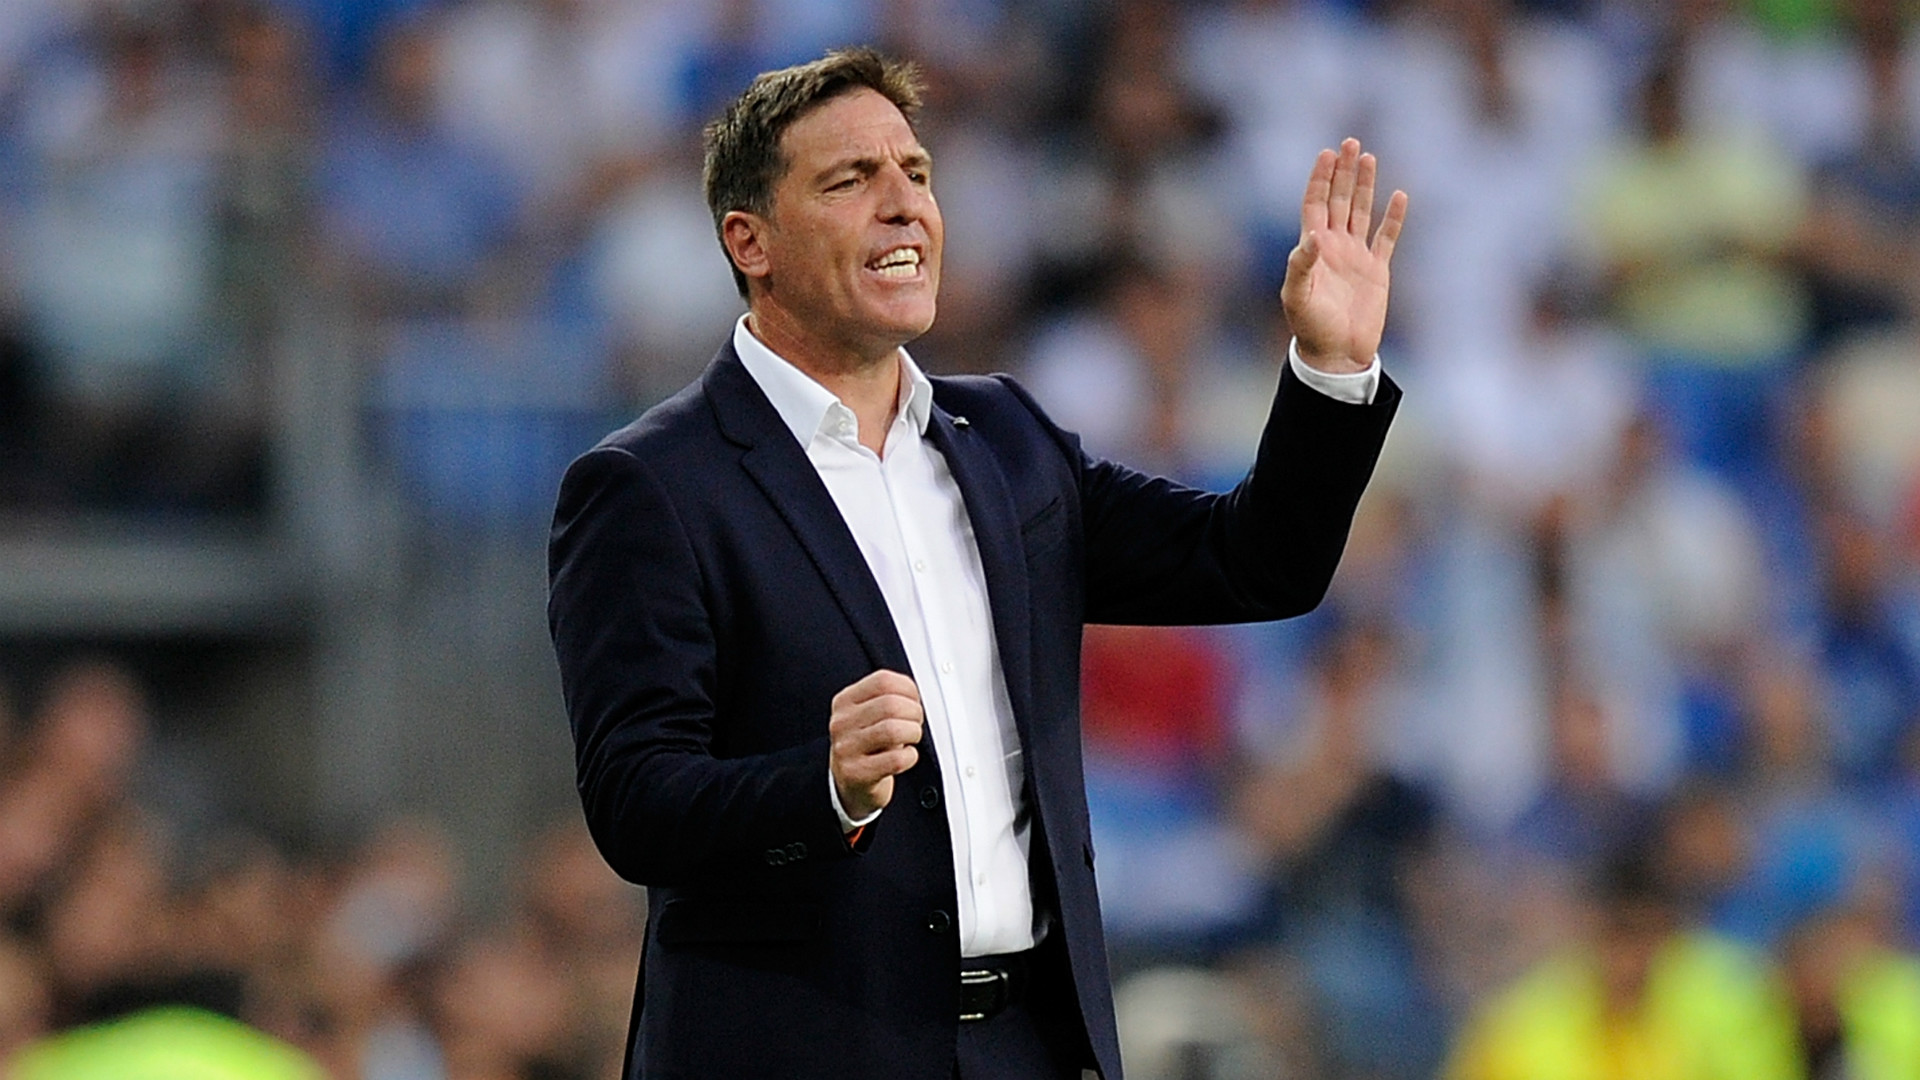 Sevilla reaches deal to hire Eduardo Berizzo as coach